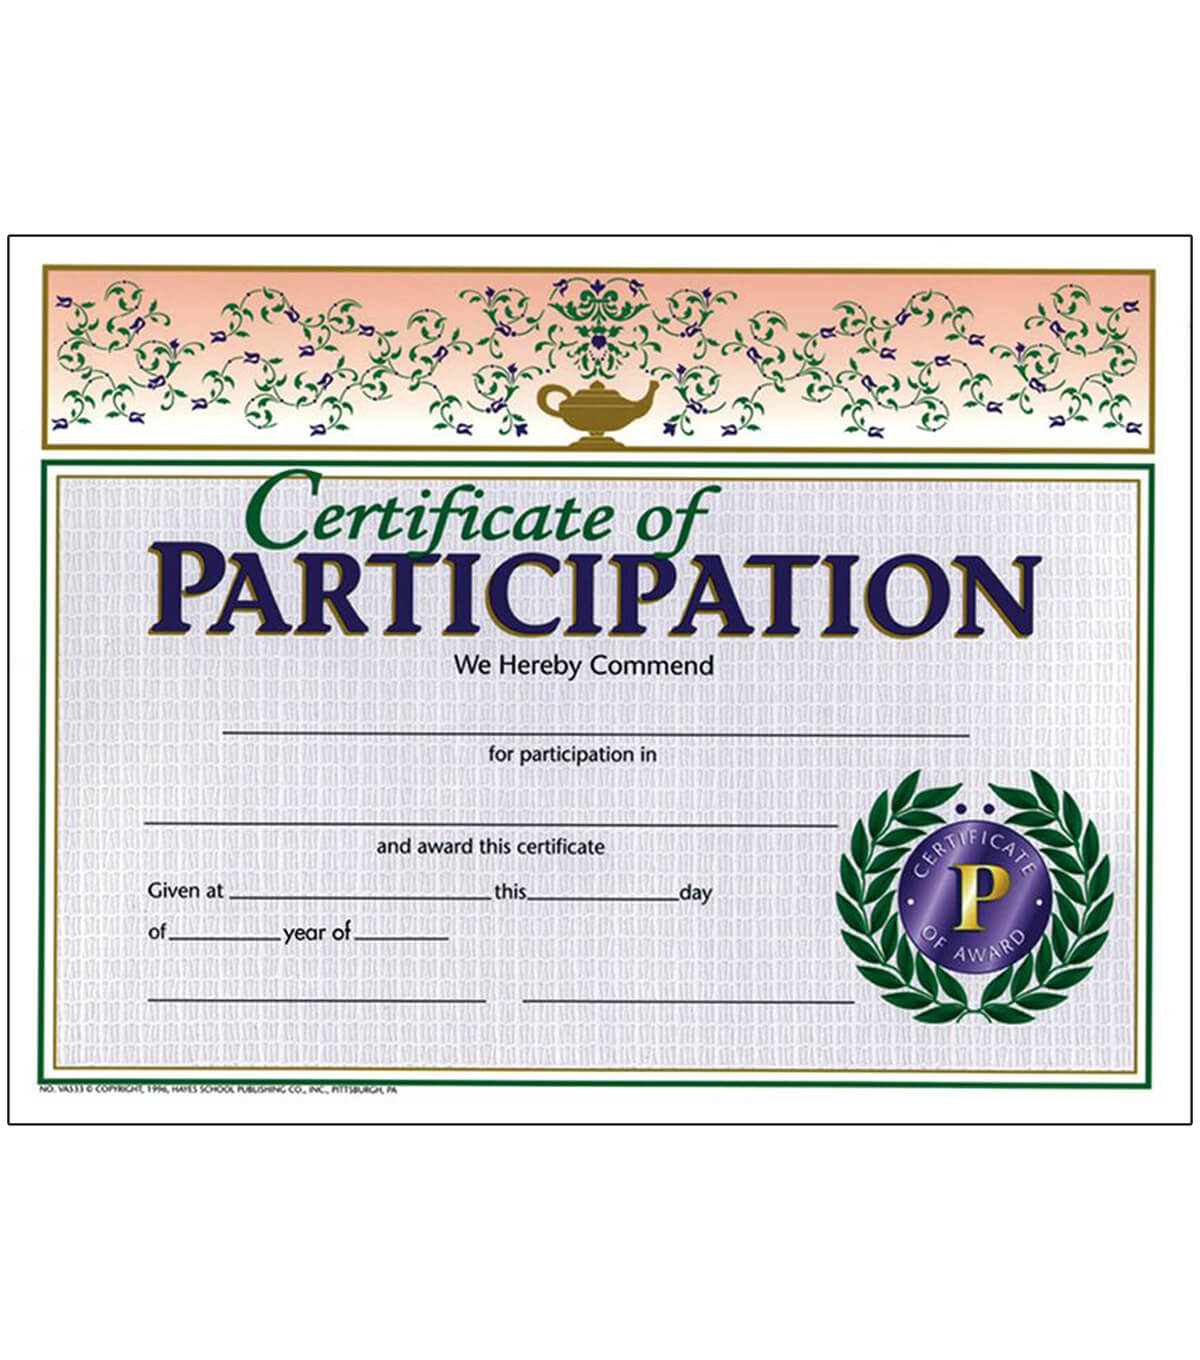 Hayes Certificate Of Participation, 30 Per Pack, 6 Packs intended for Hayes Certificate Templates